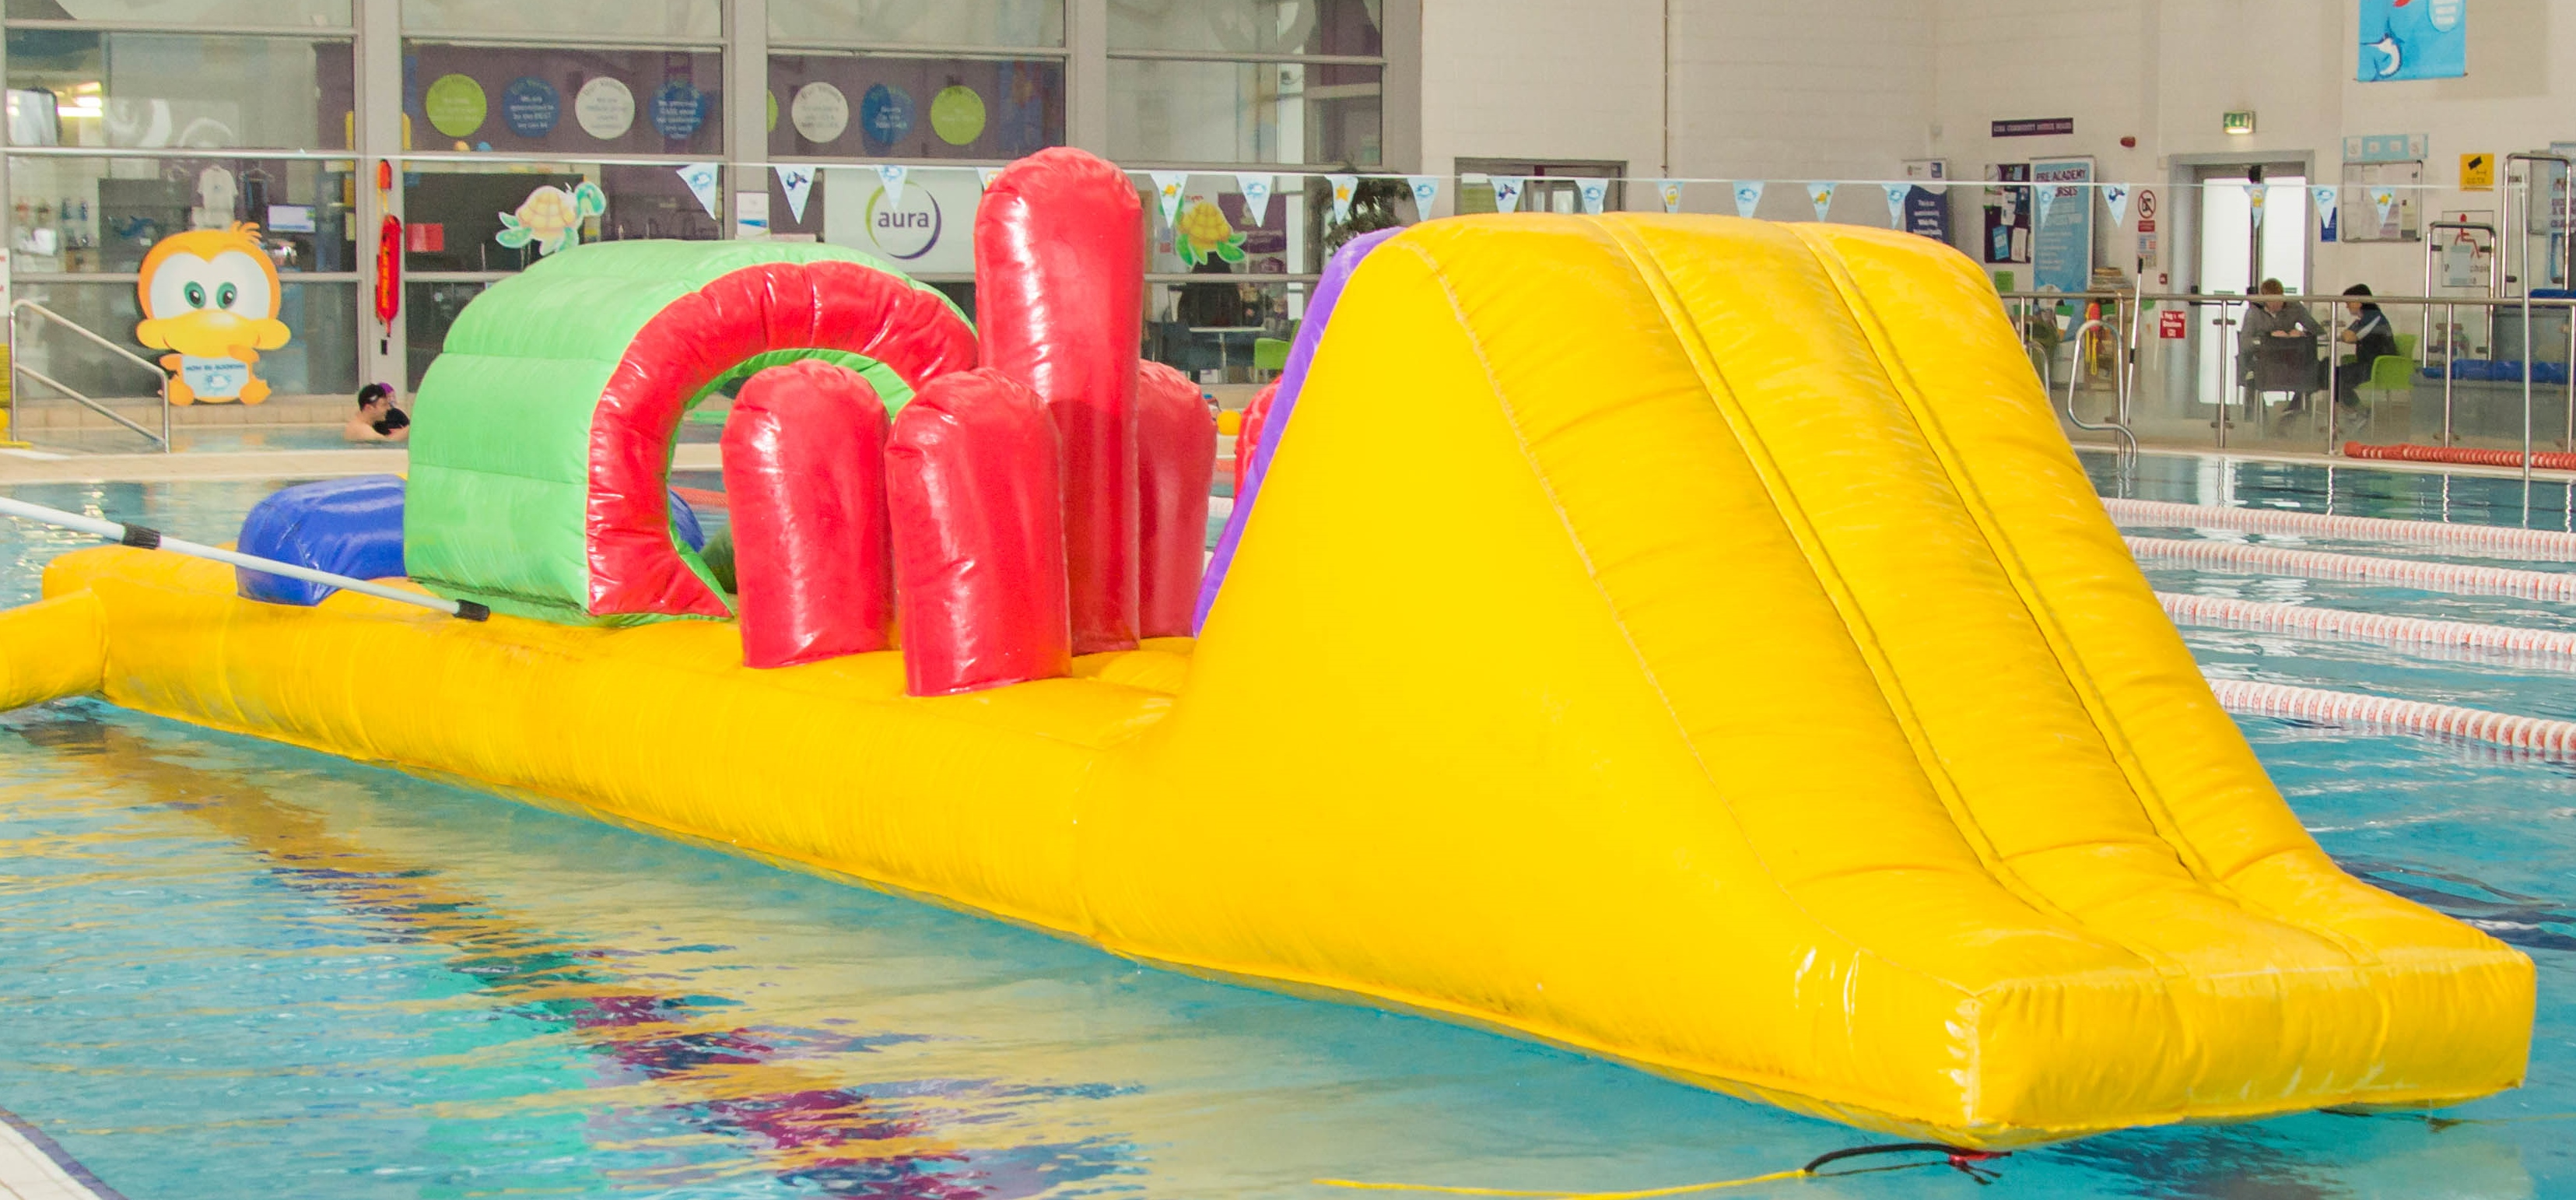 Inflatable family fun swim 39 s aura leisure centres - Drogheda leisure centre swimming pool ...